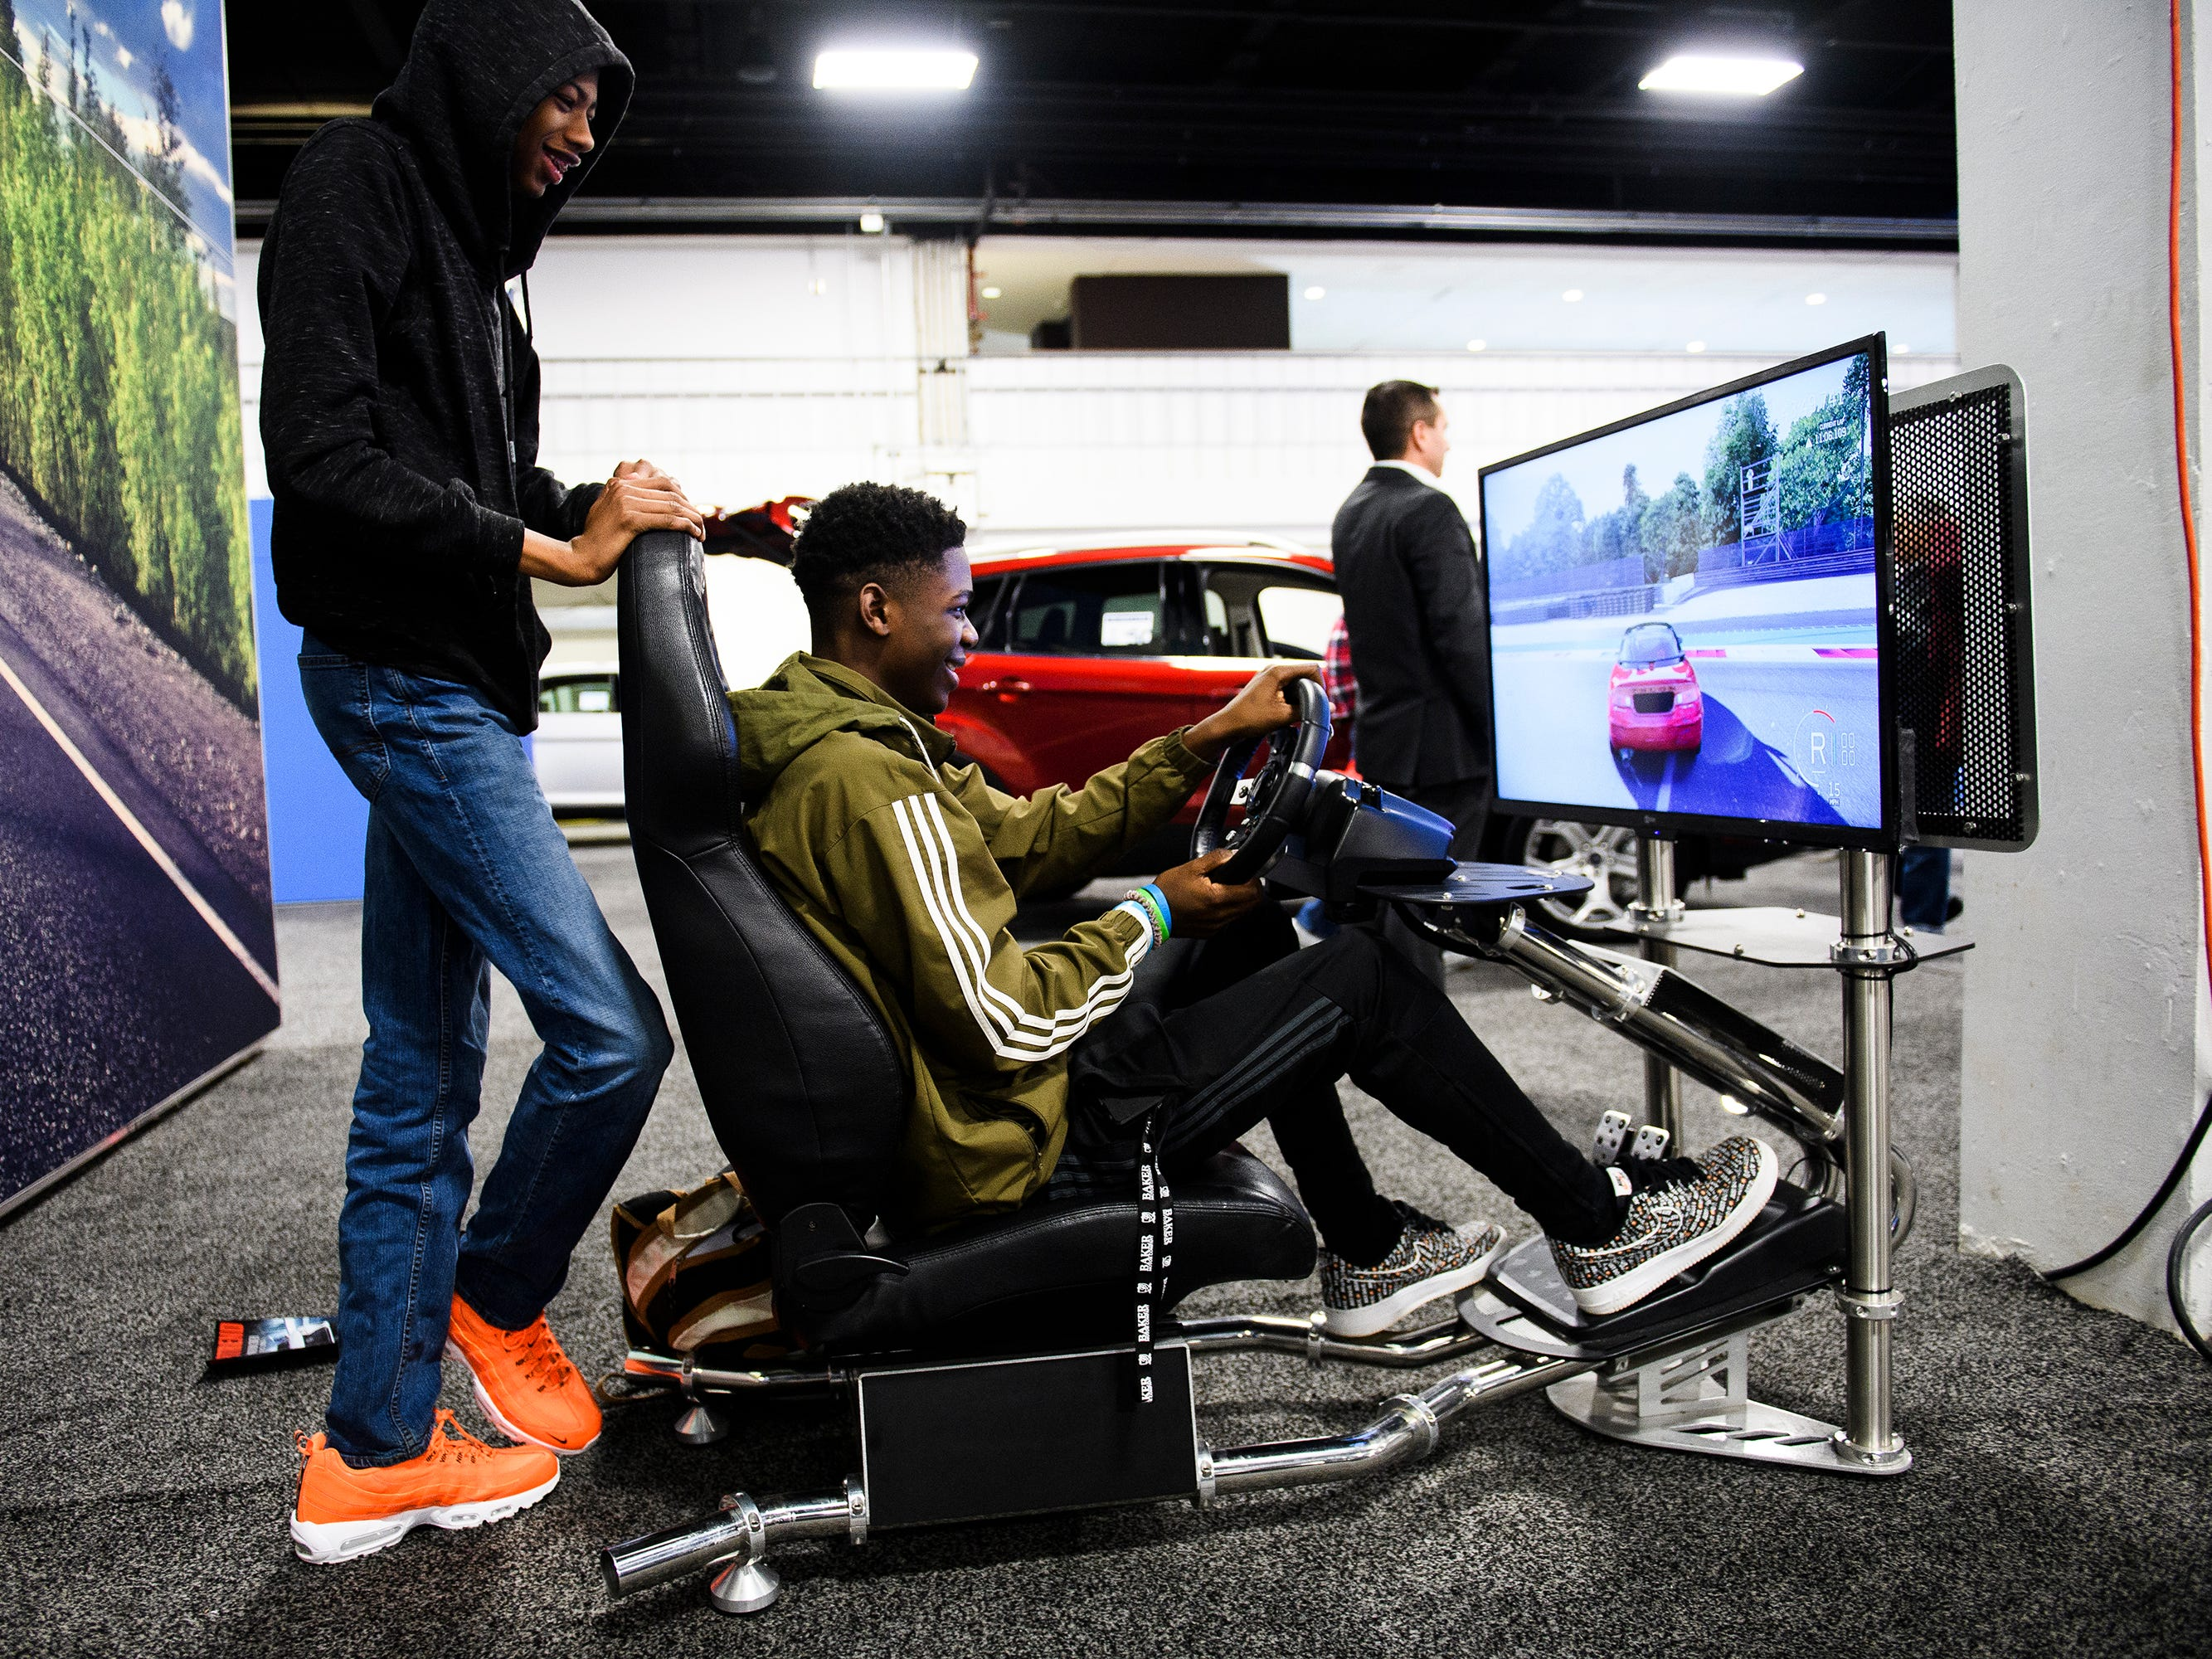 Jykee Whitfield plays a racing game as Tydriques Sullivan watches during the South Carolina International Auto Show Friday, Jan. 11, 2019 at the Greenville Convention Center.